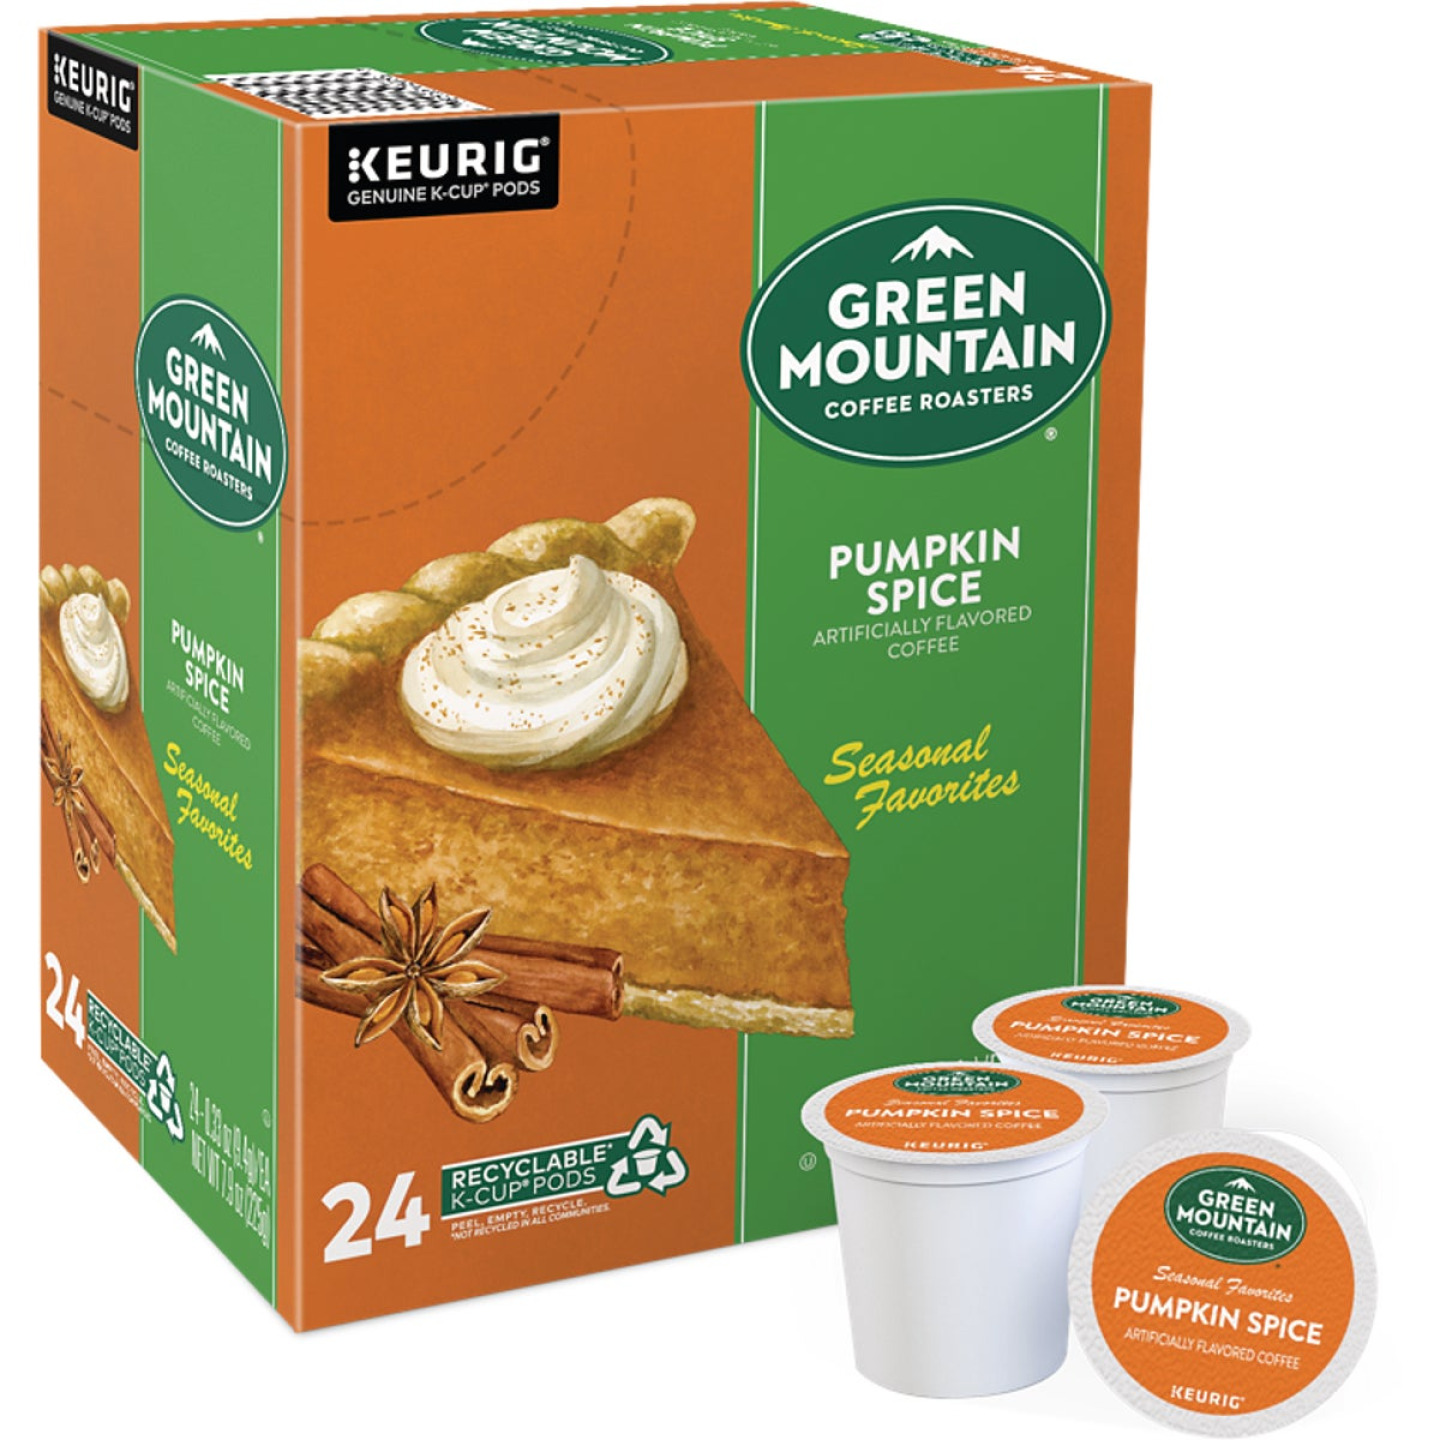 Keurig Green Mountain Coffee Pumpkin Spice K-Cup (24 Pack) Image 1